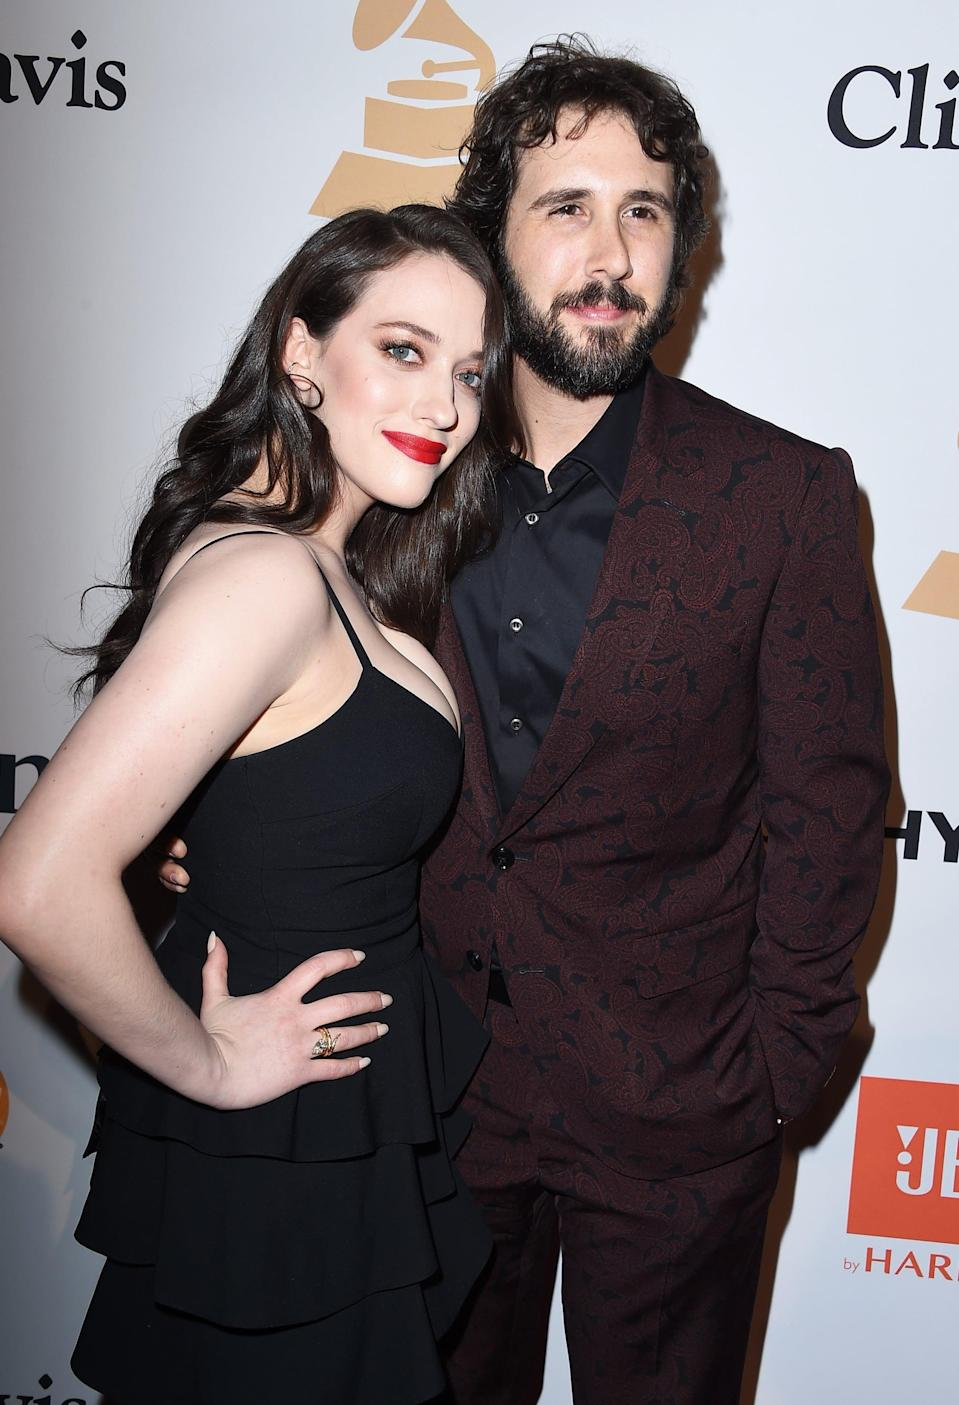 """<p>The couple started dating in October 2014 after Kat was <a href=""""https://people.com/celebrity/josh-groban-and-kat-dennings-break-up-after-2-years-of-dating/"""" class=""""link rapid-noclick-resp"""" rel=""""nofollow noopener"""" target=""""_blank"""" data-ylk=""""slk:introduced to Josh by her 2 Broke Girls costar"""">introduced to Josh by her <strong>2 Broke Girls</strong> costar</a> Beth Behrs. """"<a href=""""https://people.com/tv/kat-dennings-talks-about-josh-groban-on-ellen-video/"""" class=""""link rapid-noclick-resp"""" rel=""""nofollow noopener"""" target=""""_blank"""" data-ylk=""""slk:He's just a genius"""">He's just a genius</a>,"""" the actress gushed to <a class=""""link rapid-noclick-resp"""" href=""""https://www.popsugar.com/Ellen-DeGeneres"""" rel=""""nofollow noopener"""" target=""""_blank"""" data-ylk=""""slk:Ellen DeGeneres"""">Ellen DeGeneres</a> in 2015. Josh expressed similar sentiments during his own appearance on <strong>The Ellen DeGeneres Show</strong> that same year, saying, """"Humor is such a huge thing for me, so, you know, the fact that we could talk about Monty Python and all sorts of weird other things, I was like, 'OK yeah, <a href=""""https://people.com/tv/josh-groban-gushes-about-kat-dennings-then-gasps-from-fright-during-roller-coaster-ellen-interview-video/"""" class=""""link rapid-noclick-resp"""" rel=""""nofollow noopener"""" target=""""_blank"""" data-ylk=""""slk:we're on the same page"""">we're on the same page</a>.'"""" They dated until August 2016 when <a href=""""https://www.eonline.com/news/784111/josh-groban-and-kat-dennings-break-up-after-almost-2-years-of-dating"""" class=""""link rapid-noclick-resp"""" rel=""""nofollow noopener"""" target=""""_blank"""" data-ylk=""""slk:the pair mutually decided to break up"""">the pair mutually decided to break up</a>.</p>"""